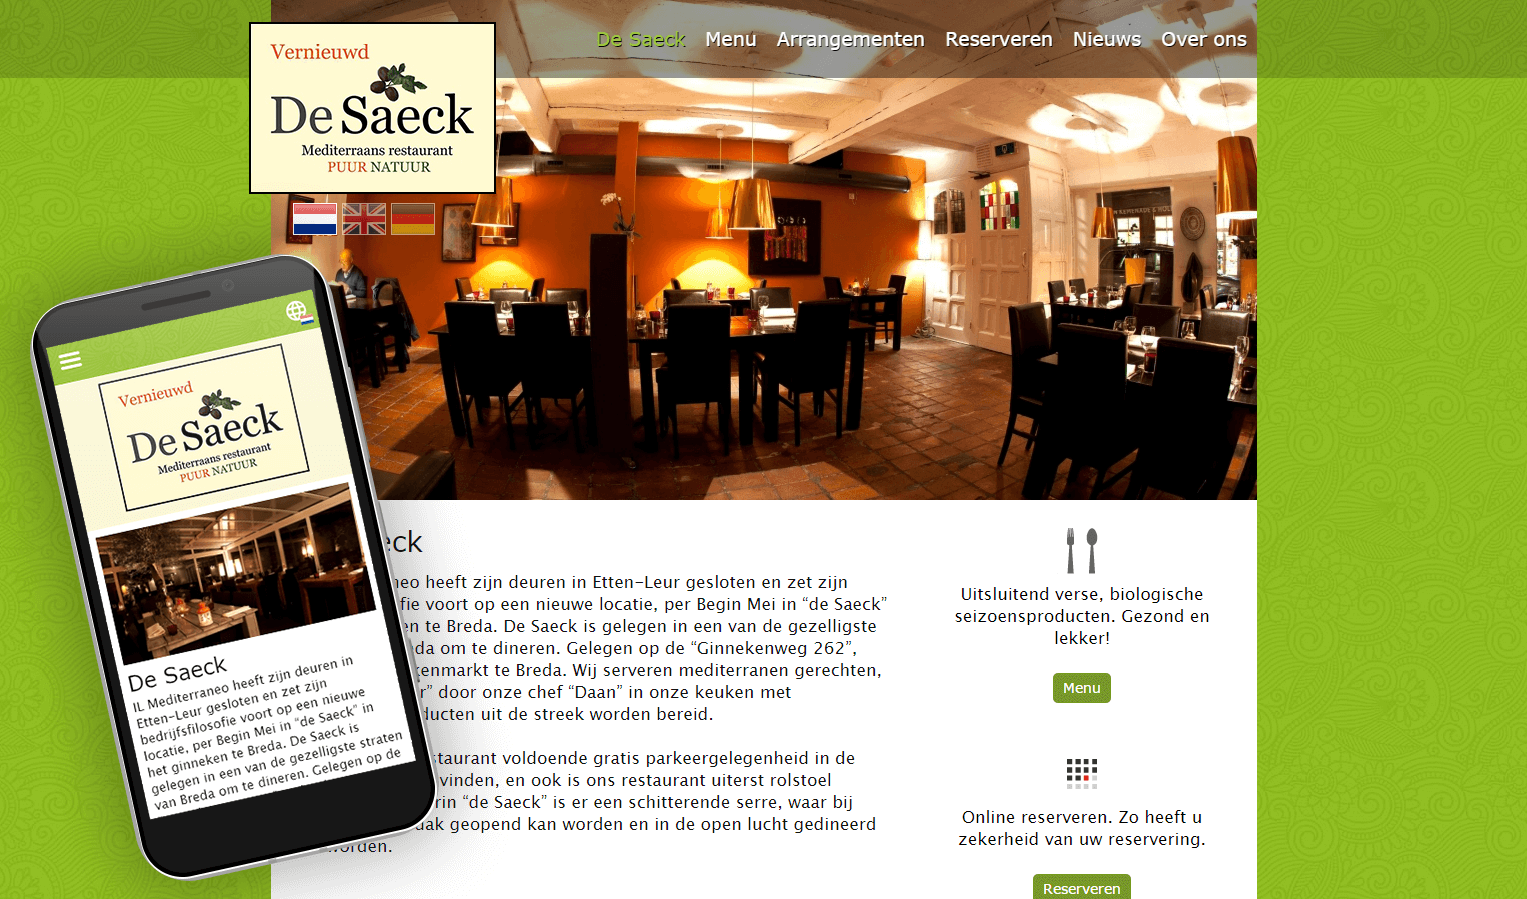 De Saeck website